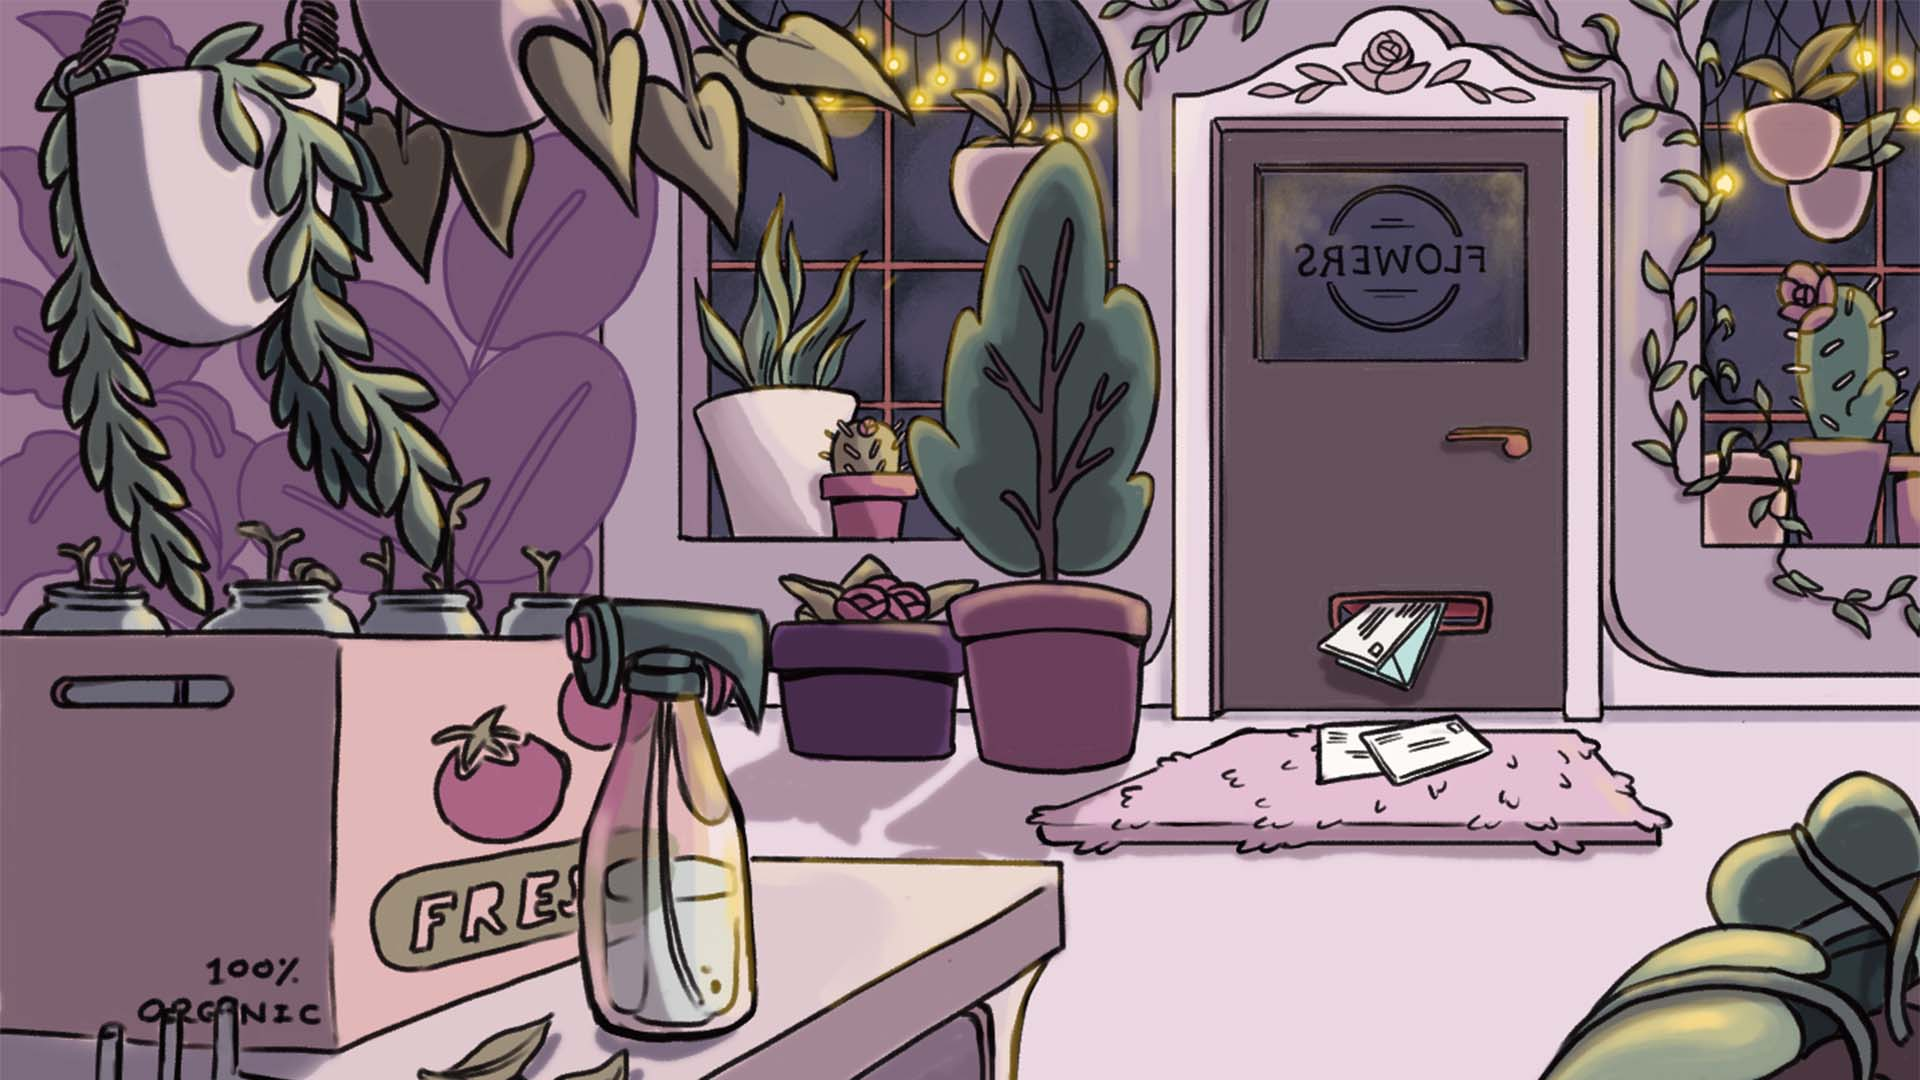 A background illustration for Night at the Flower Shop